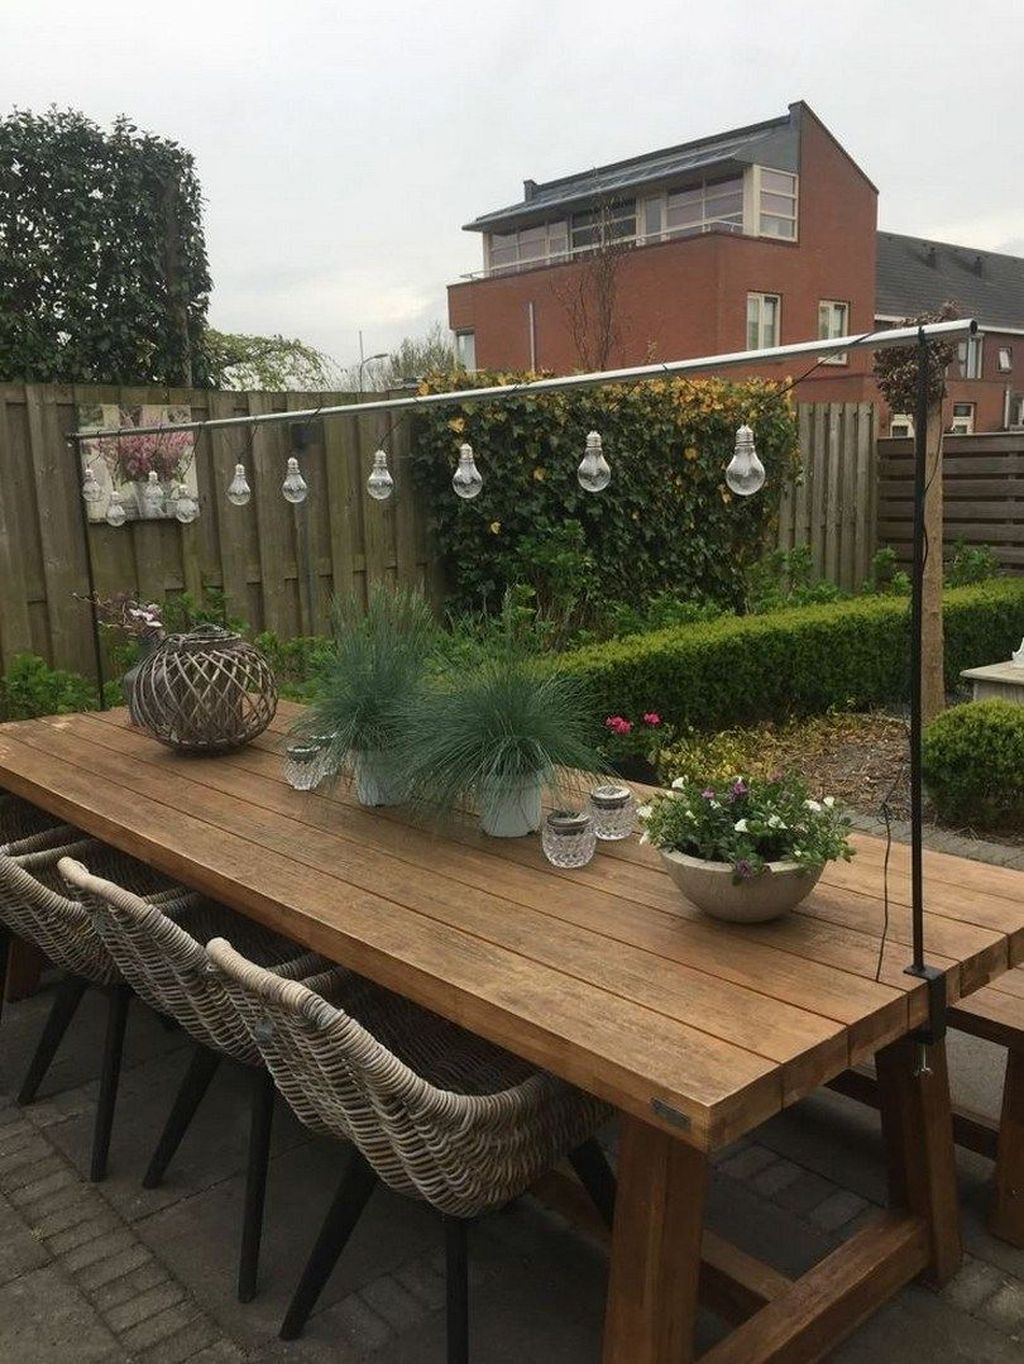 Captivating Diy Patio Gardens Ideas On A Budget To Try 03